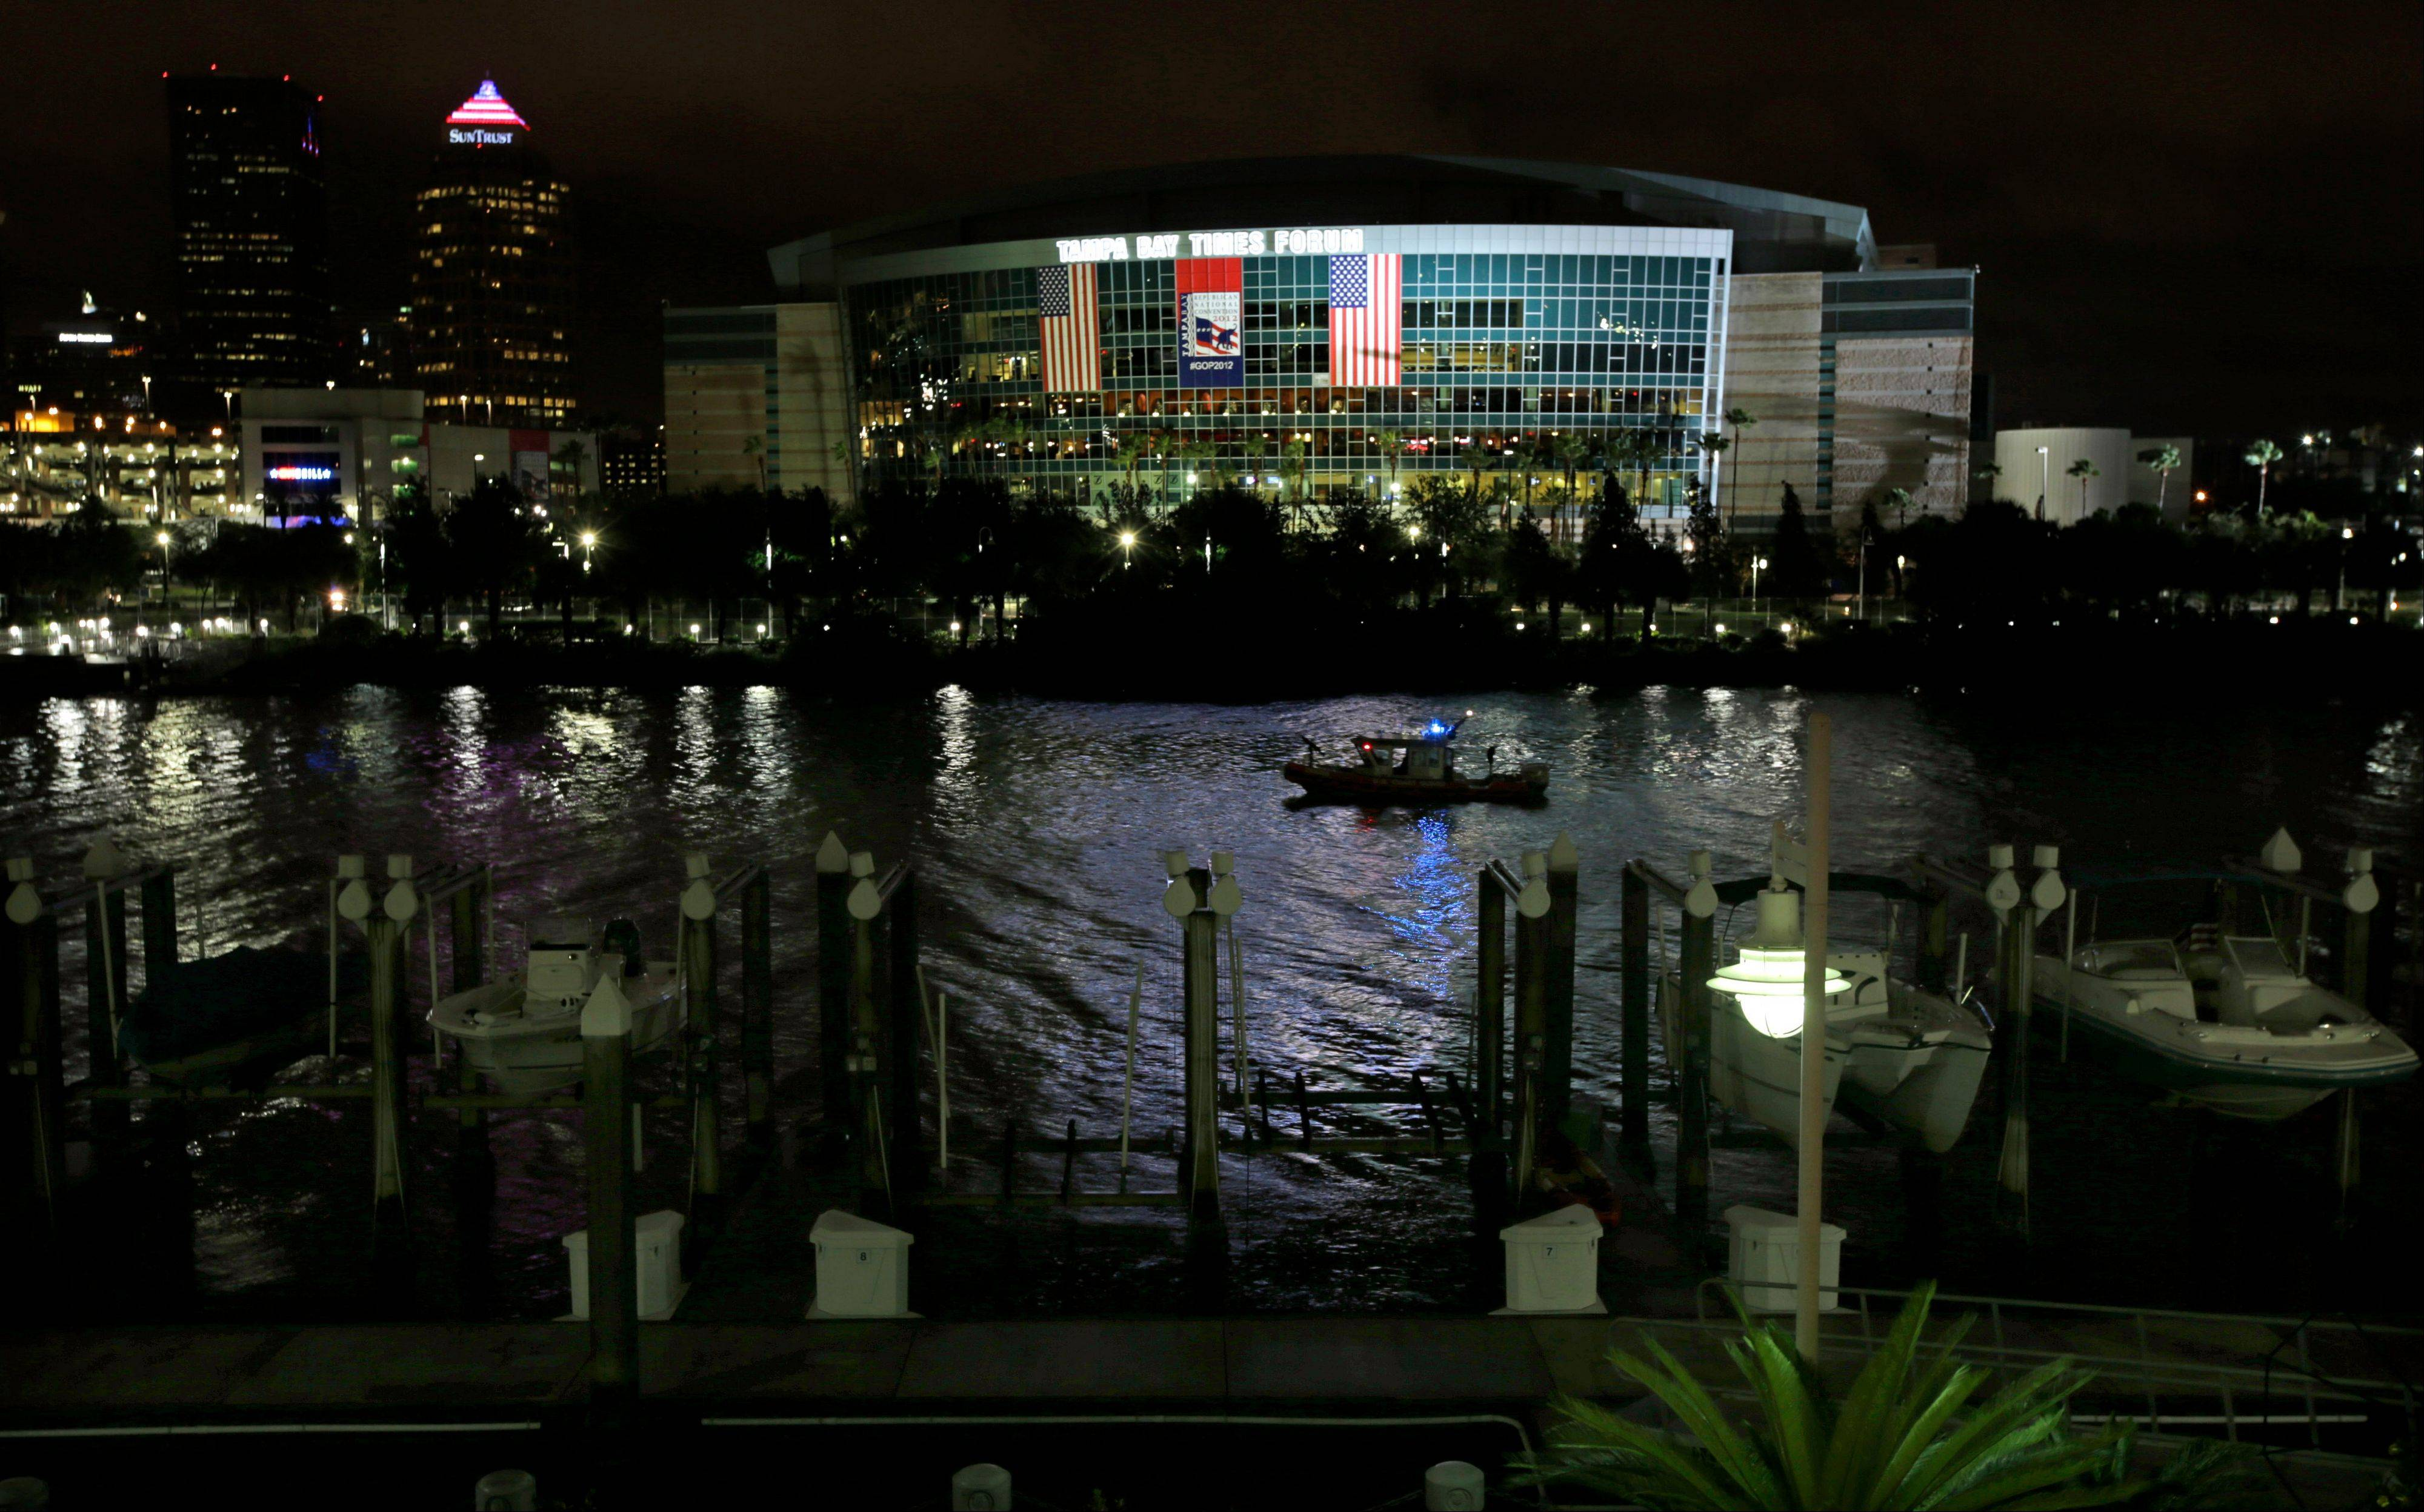 A Coast Guard patrol boat cruises past the Tampa Bay Times Forum in Tampa, Fla., Monday, Aug. 27, 2012. The start of the Republican National Convention, being held at the facility, has been delayed because of the approaching tropical storm Isaac.